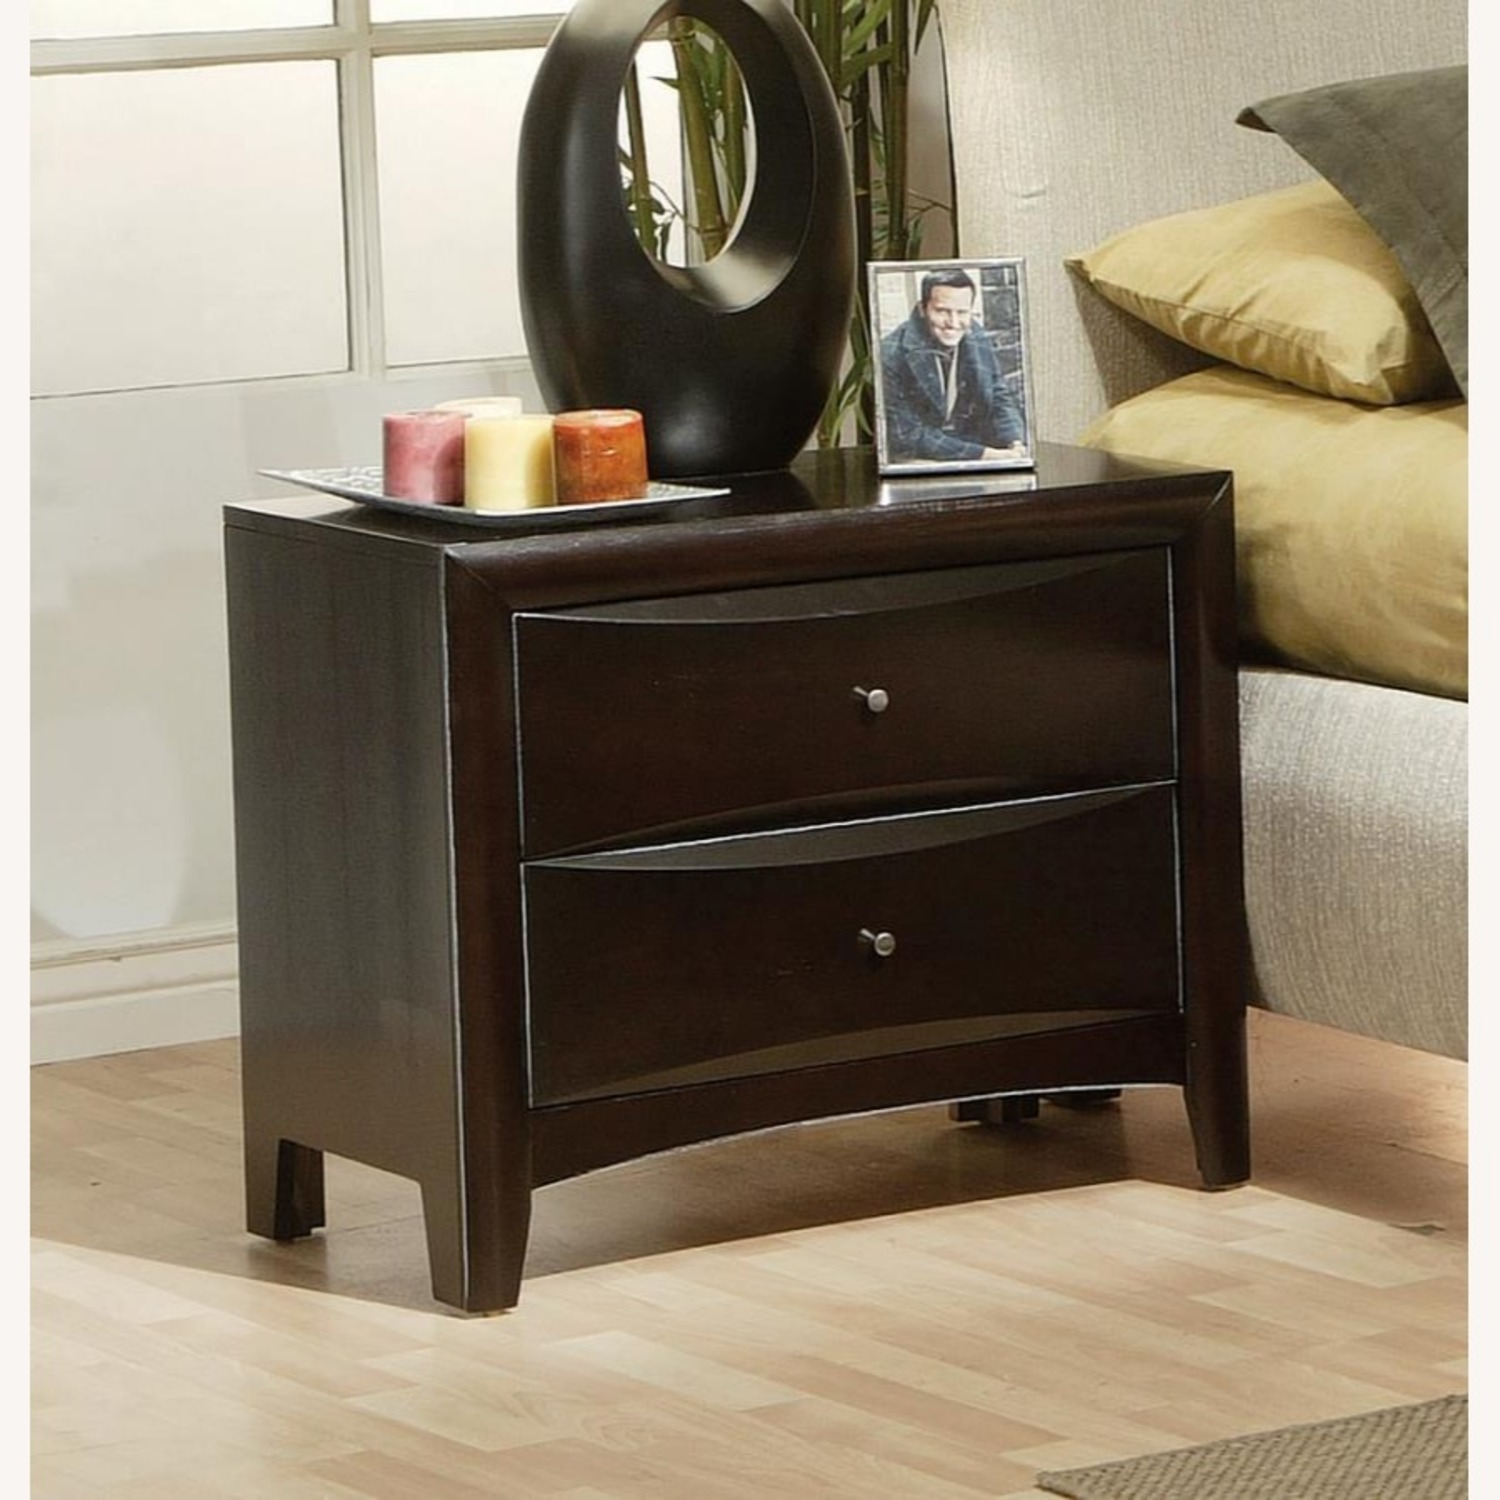 Transitional Nightstand In Deep Cappuccino Finish - image-2